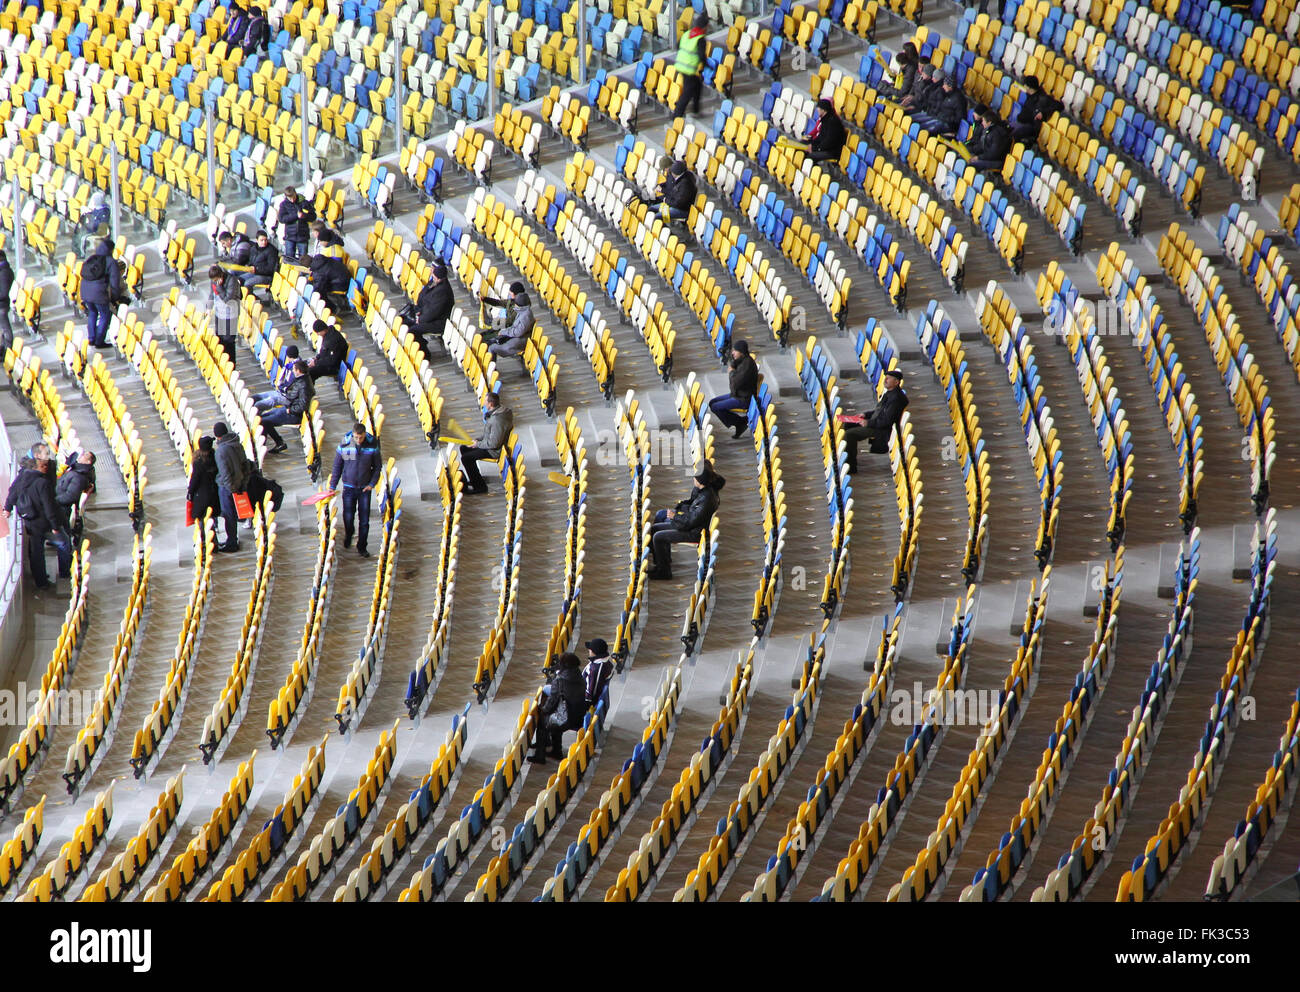 KYIV, UKRAINE - NOVEMBER 11, 2011: People fill the tribunes at the Olympic stadium (NSC Olimpiysky) before friendly - Stock Image